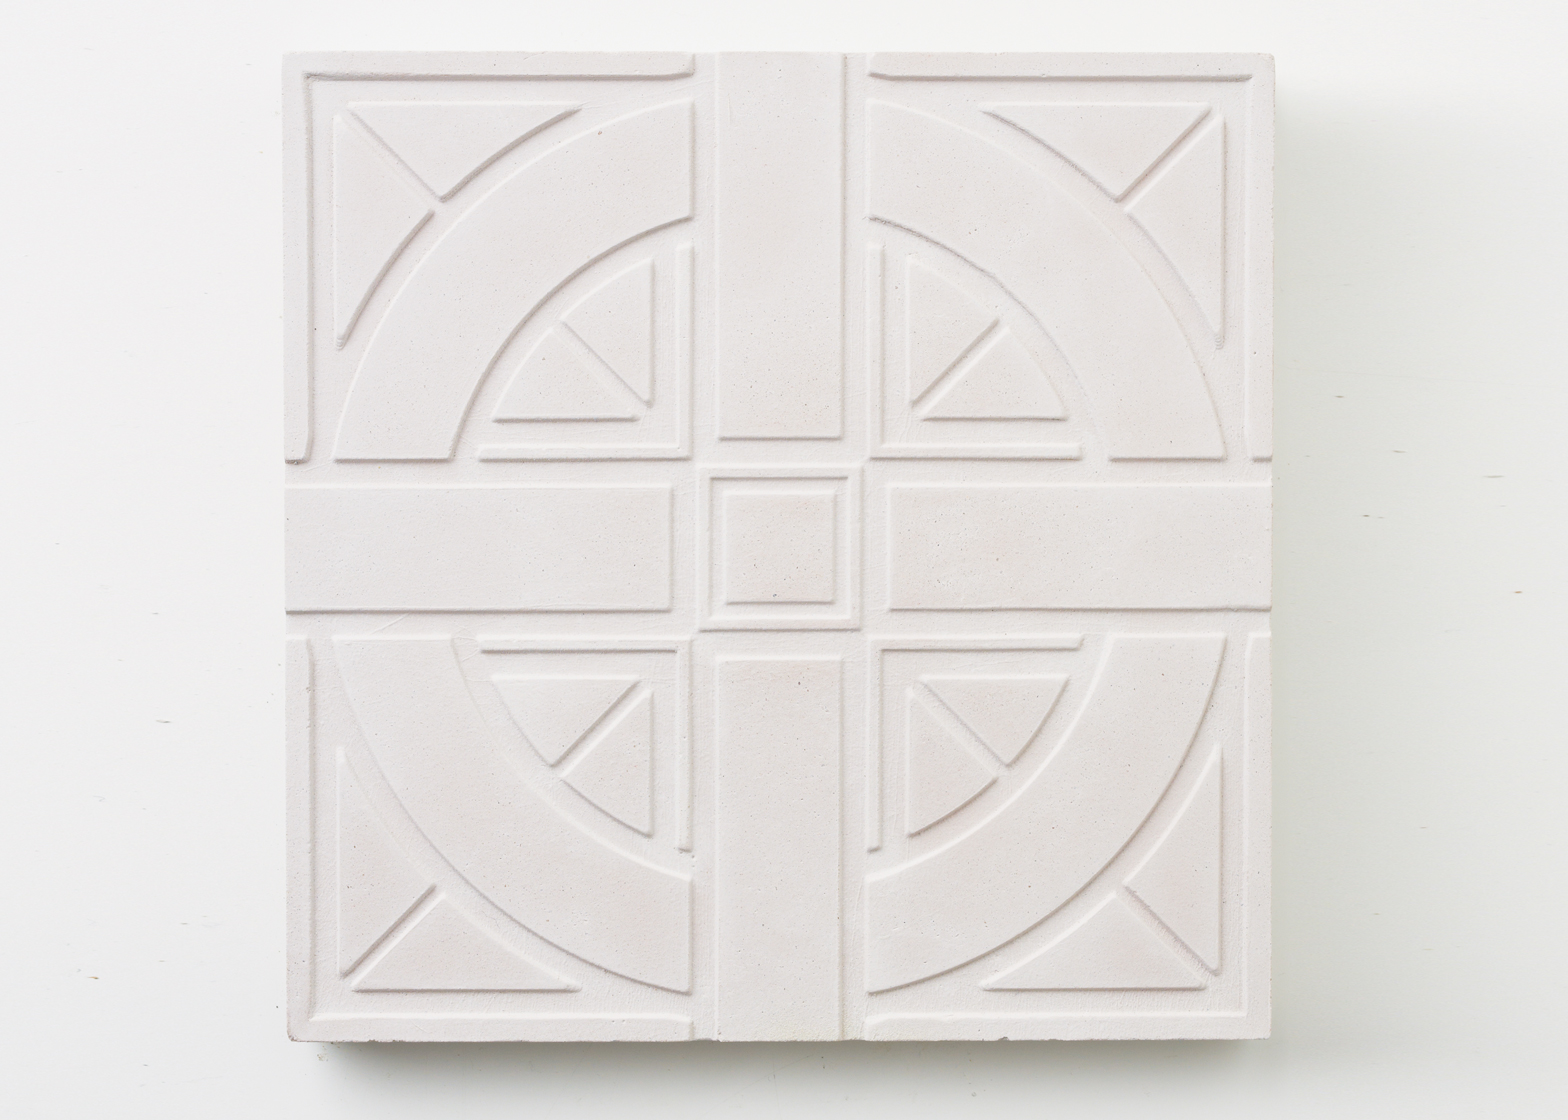 3D embossed tiles by Linsday Lang for TfL